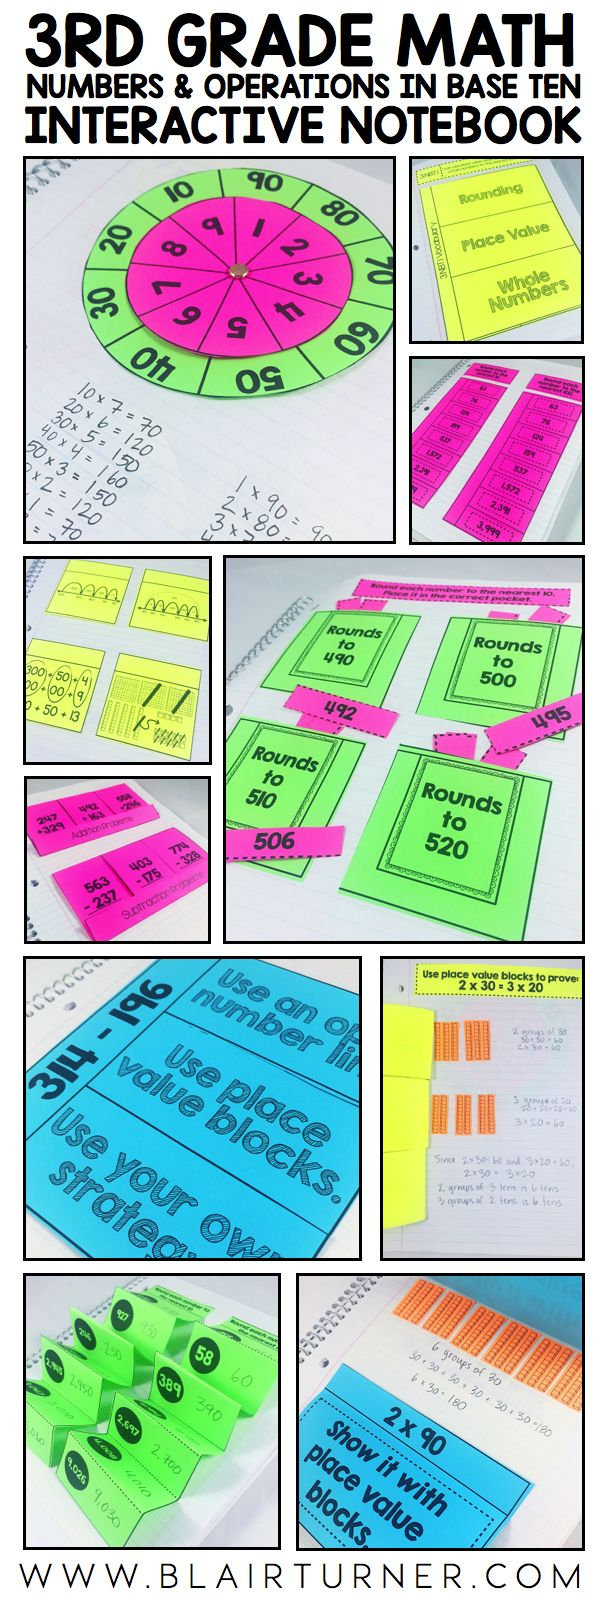 3rd grade math interactive notebook - numbers and operations in base ten bundle. Rounding to the nearest 10 and 100, adding and subtracting within 1000, and multiplying one-digit numbers by multiples of 10.